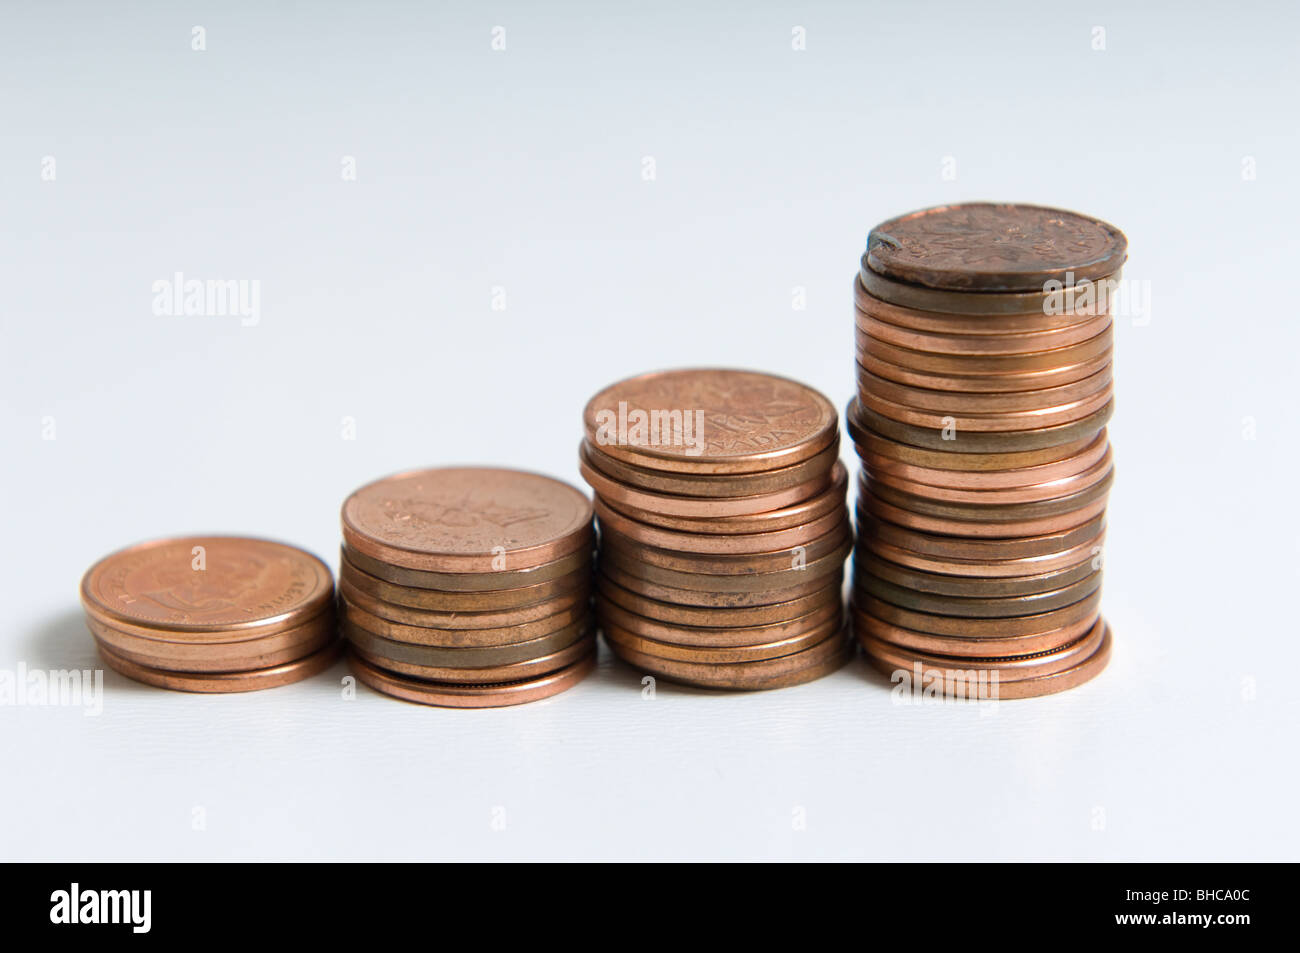 4 Stacks of coins shot on a white background. Each stack increases in size. - Stock Image